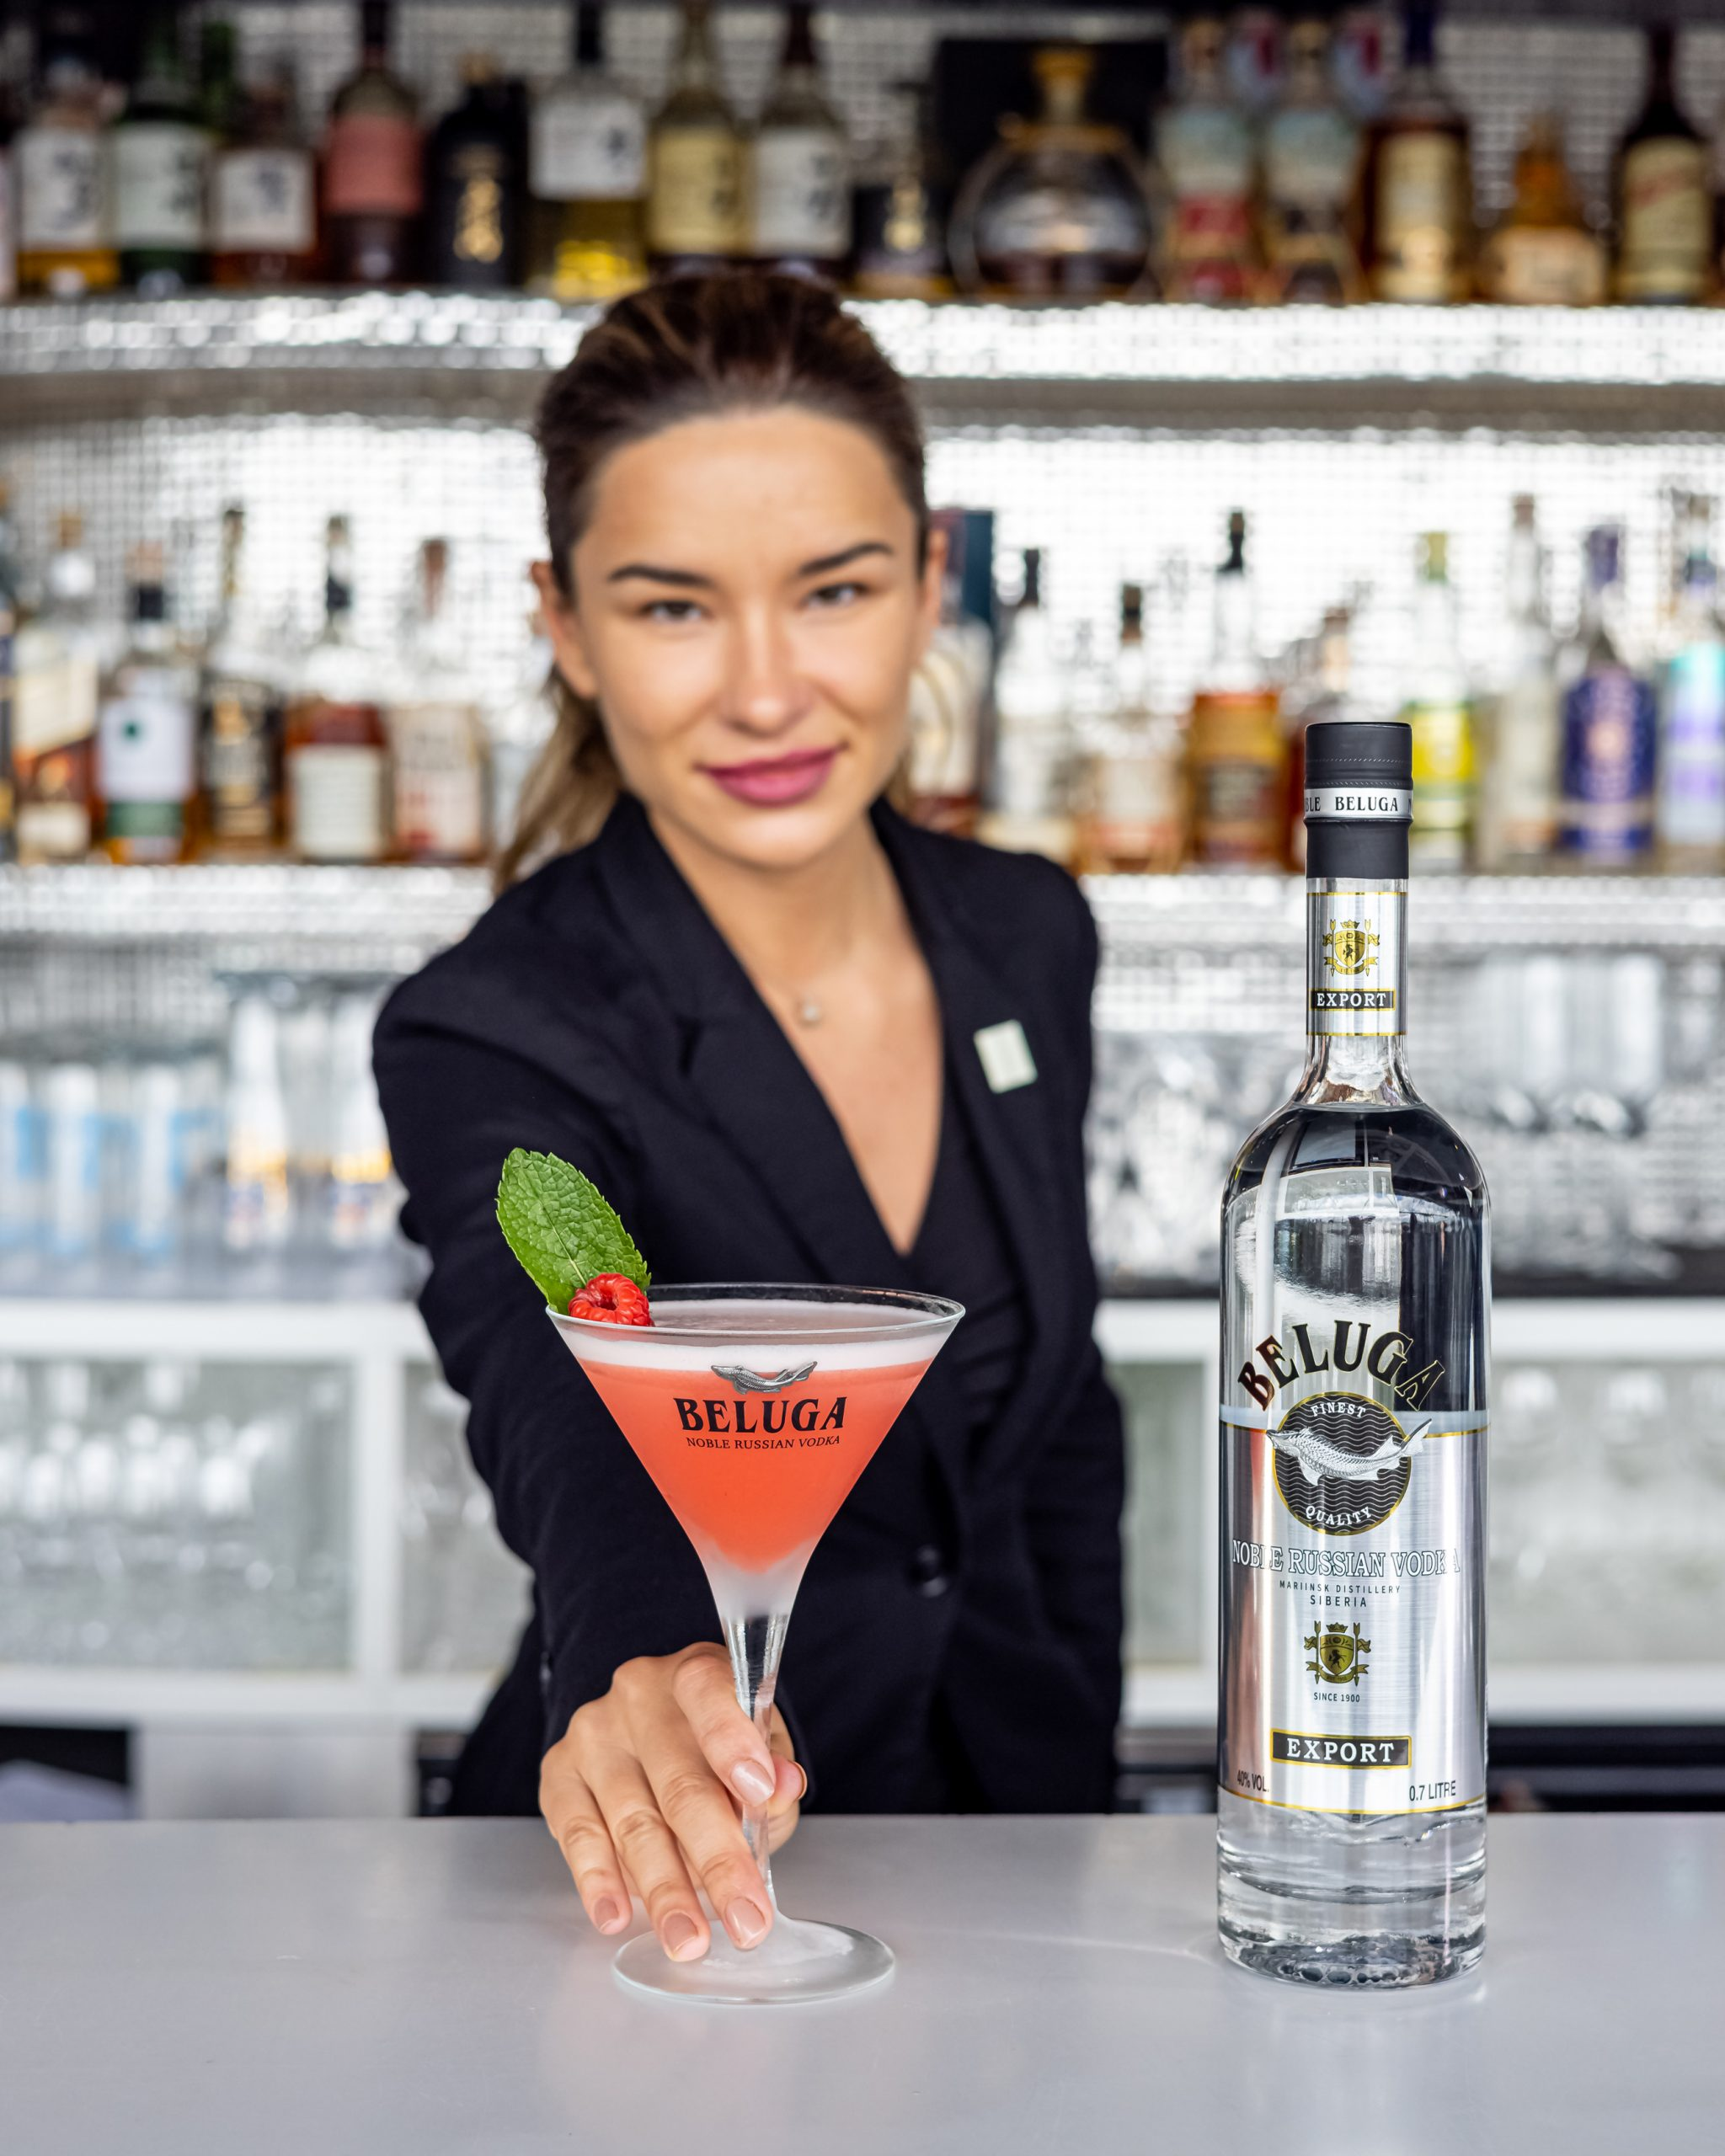 London Cocktail Week and Beluga come to OXO Bar